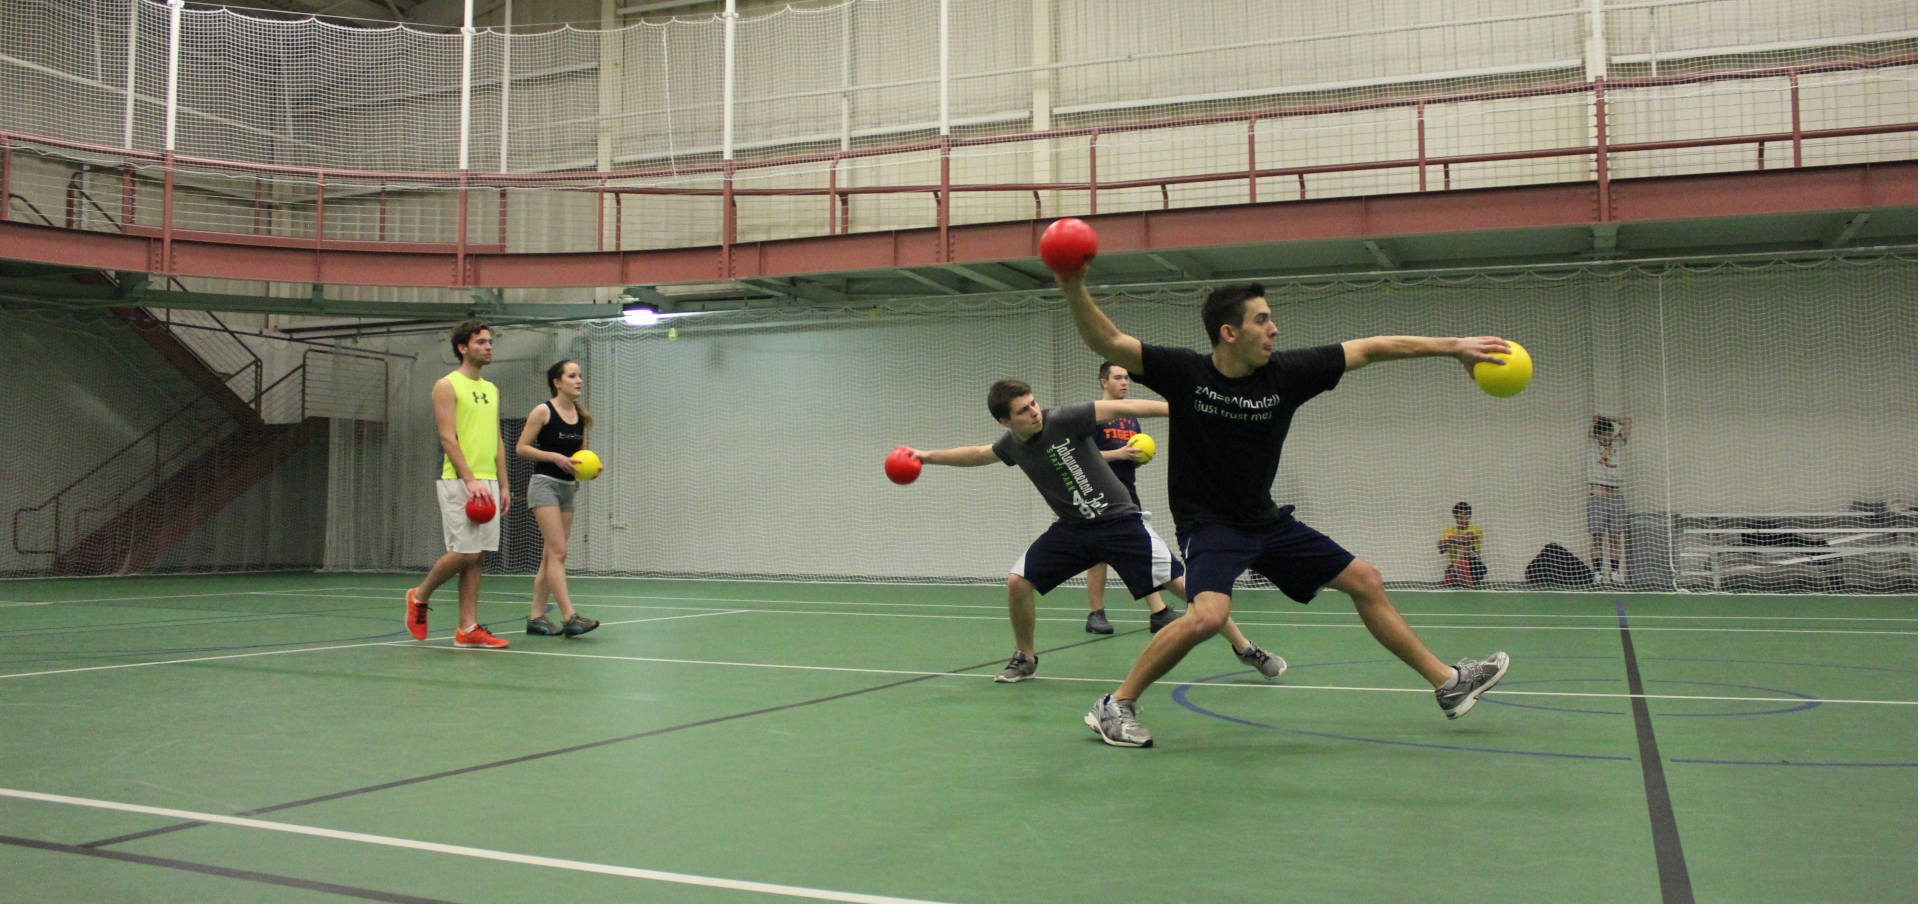 A friendly game of dodgeball in the recreation center.